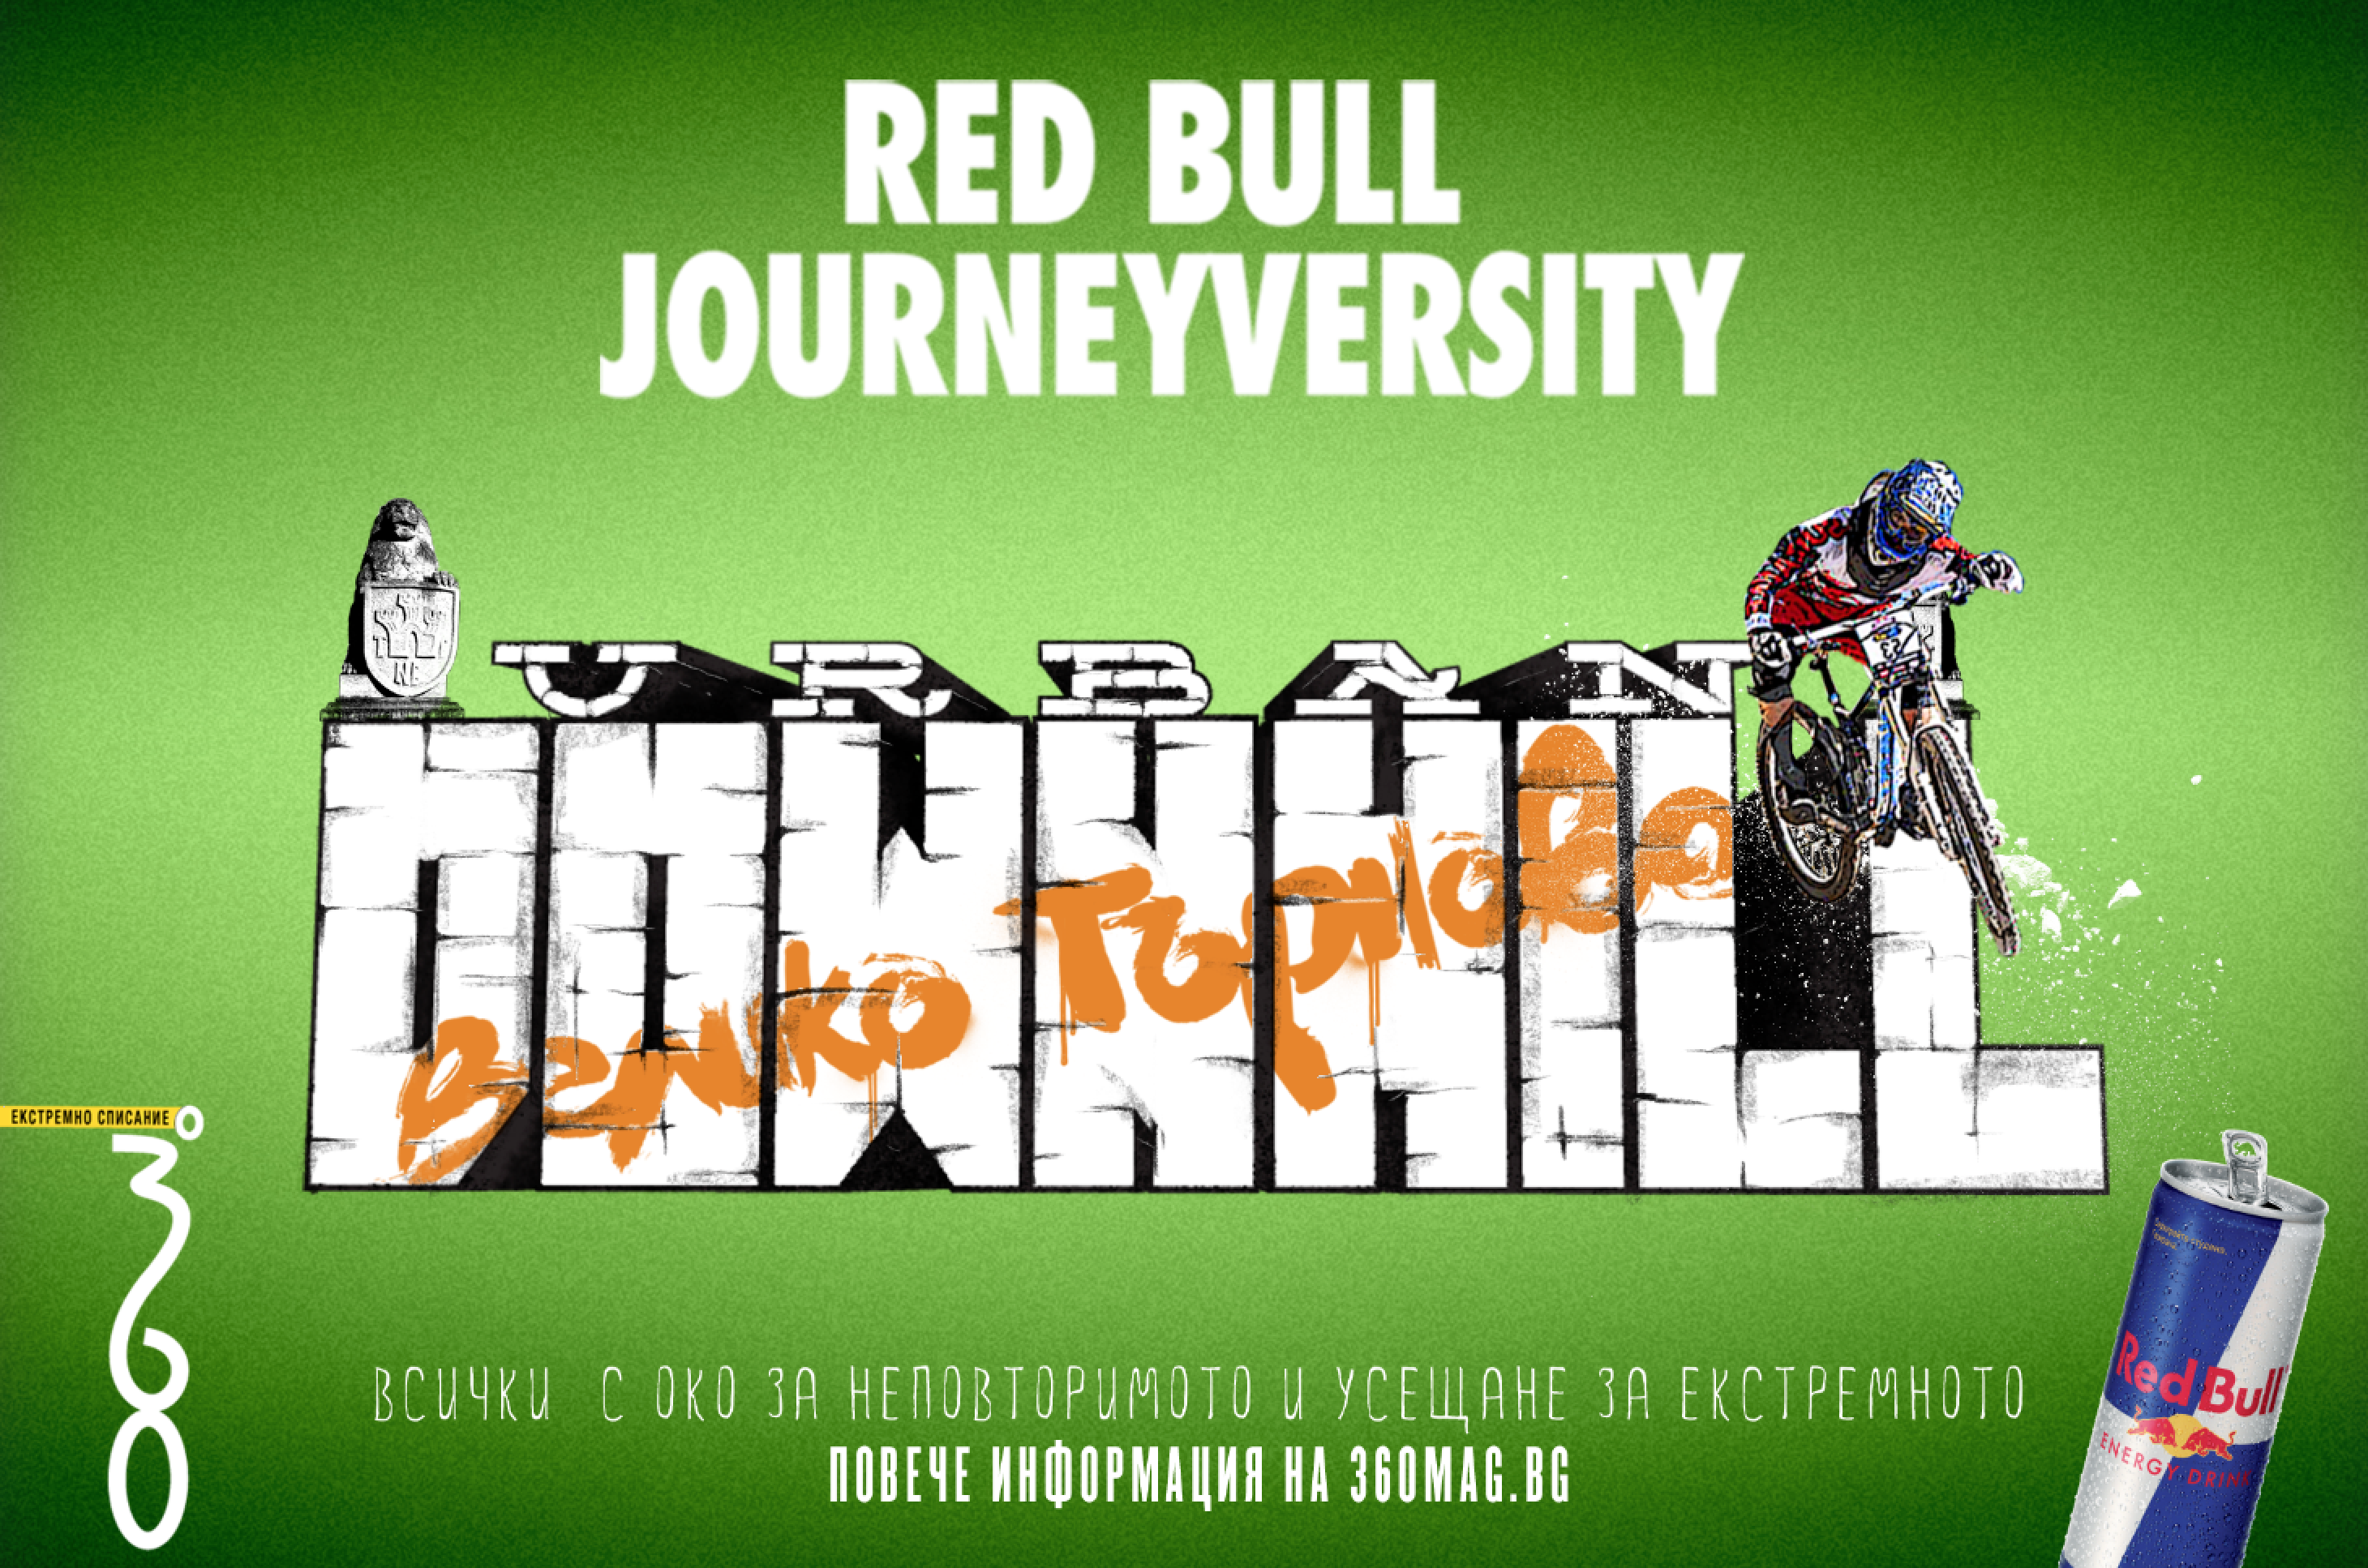 Red Bull JOURNEYversity: Байк сесия